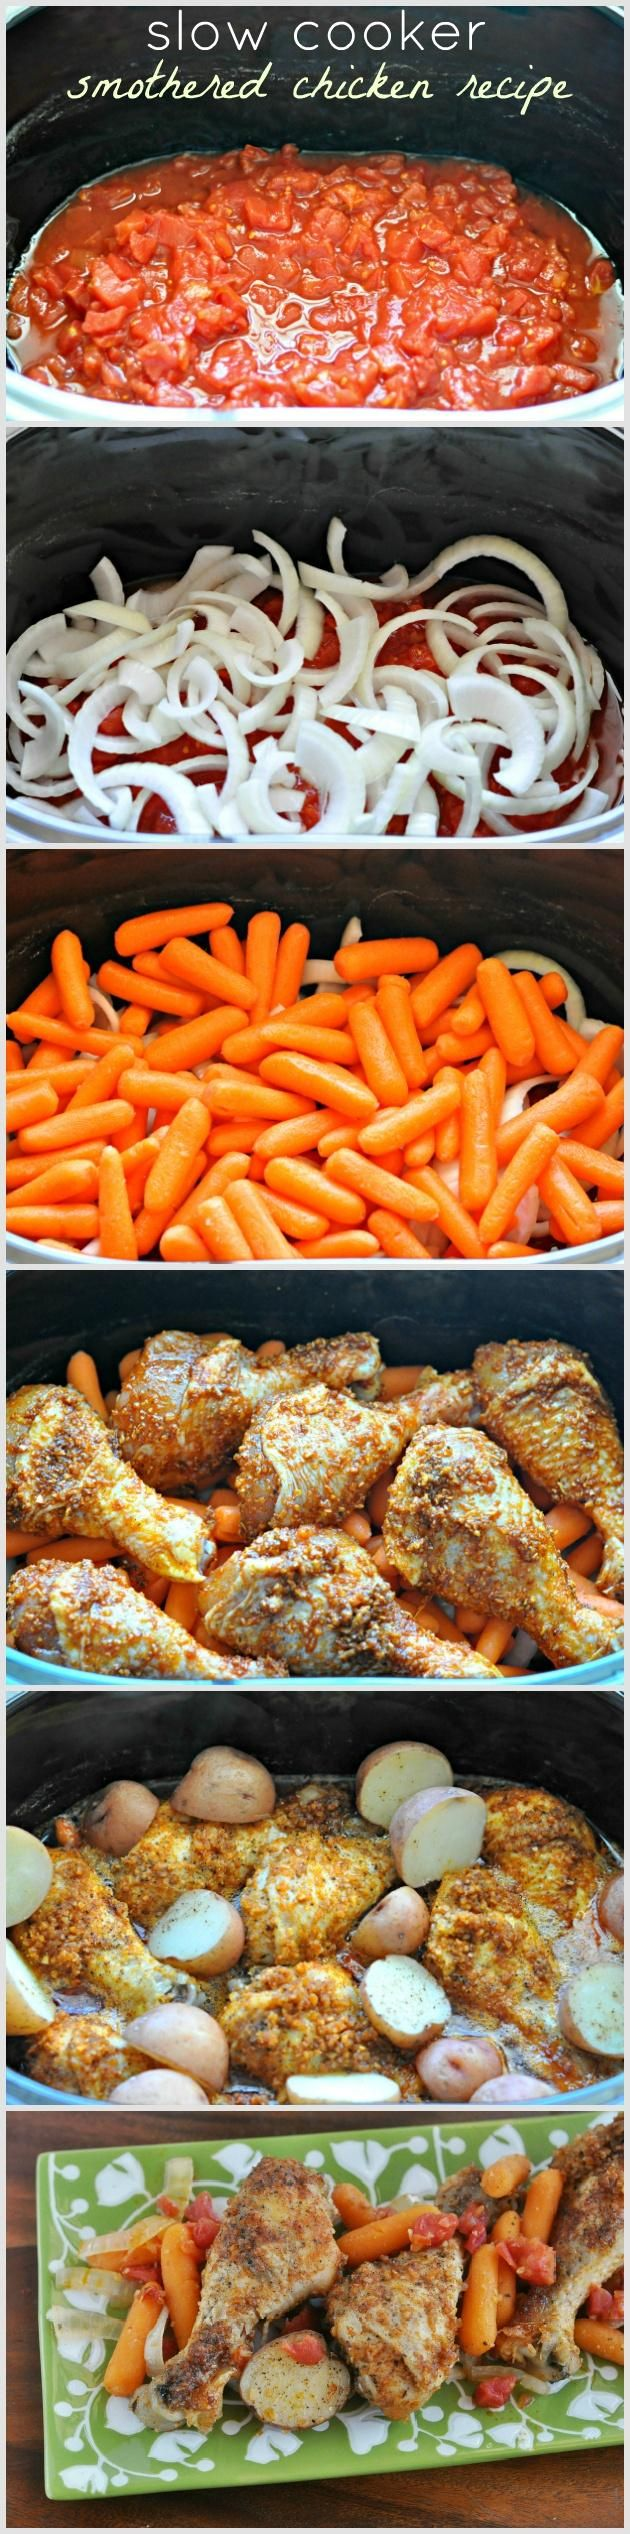 slow cooker smothered chicken recipe with chicken legs, carrots, onions, potatoes and  Spice Swiss steak seasoning.